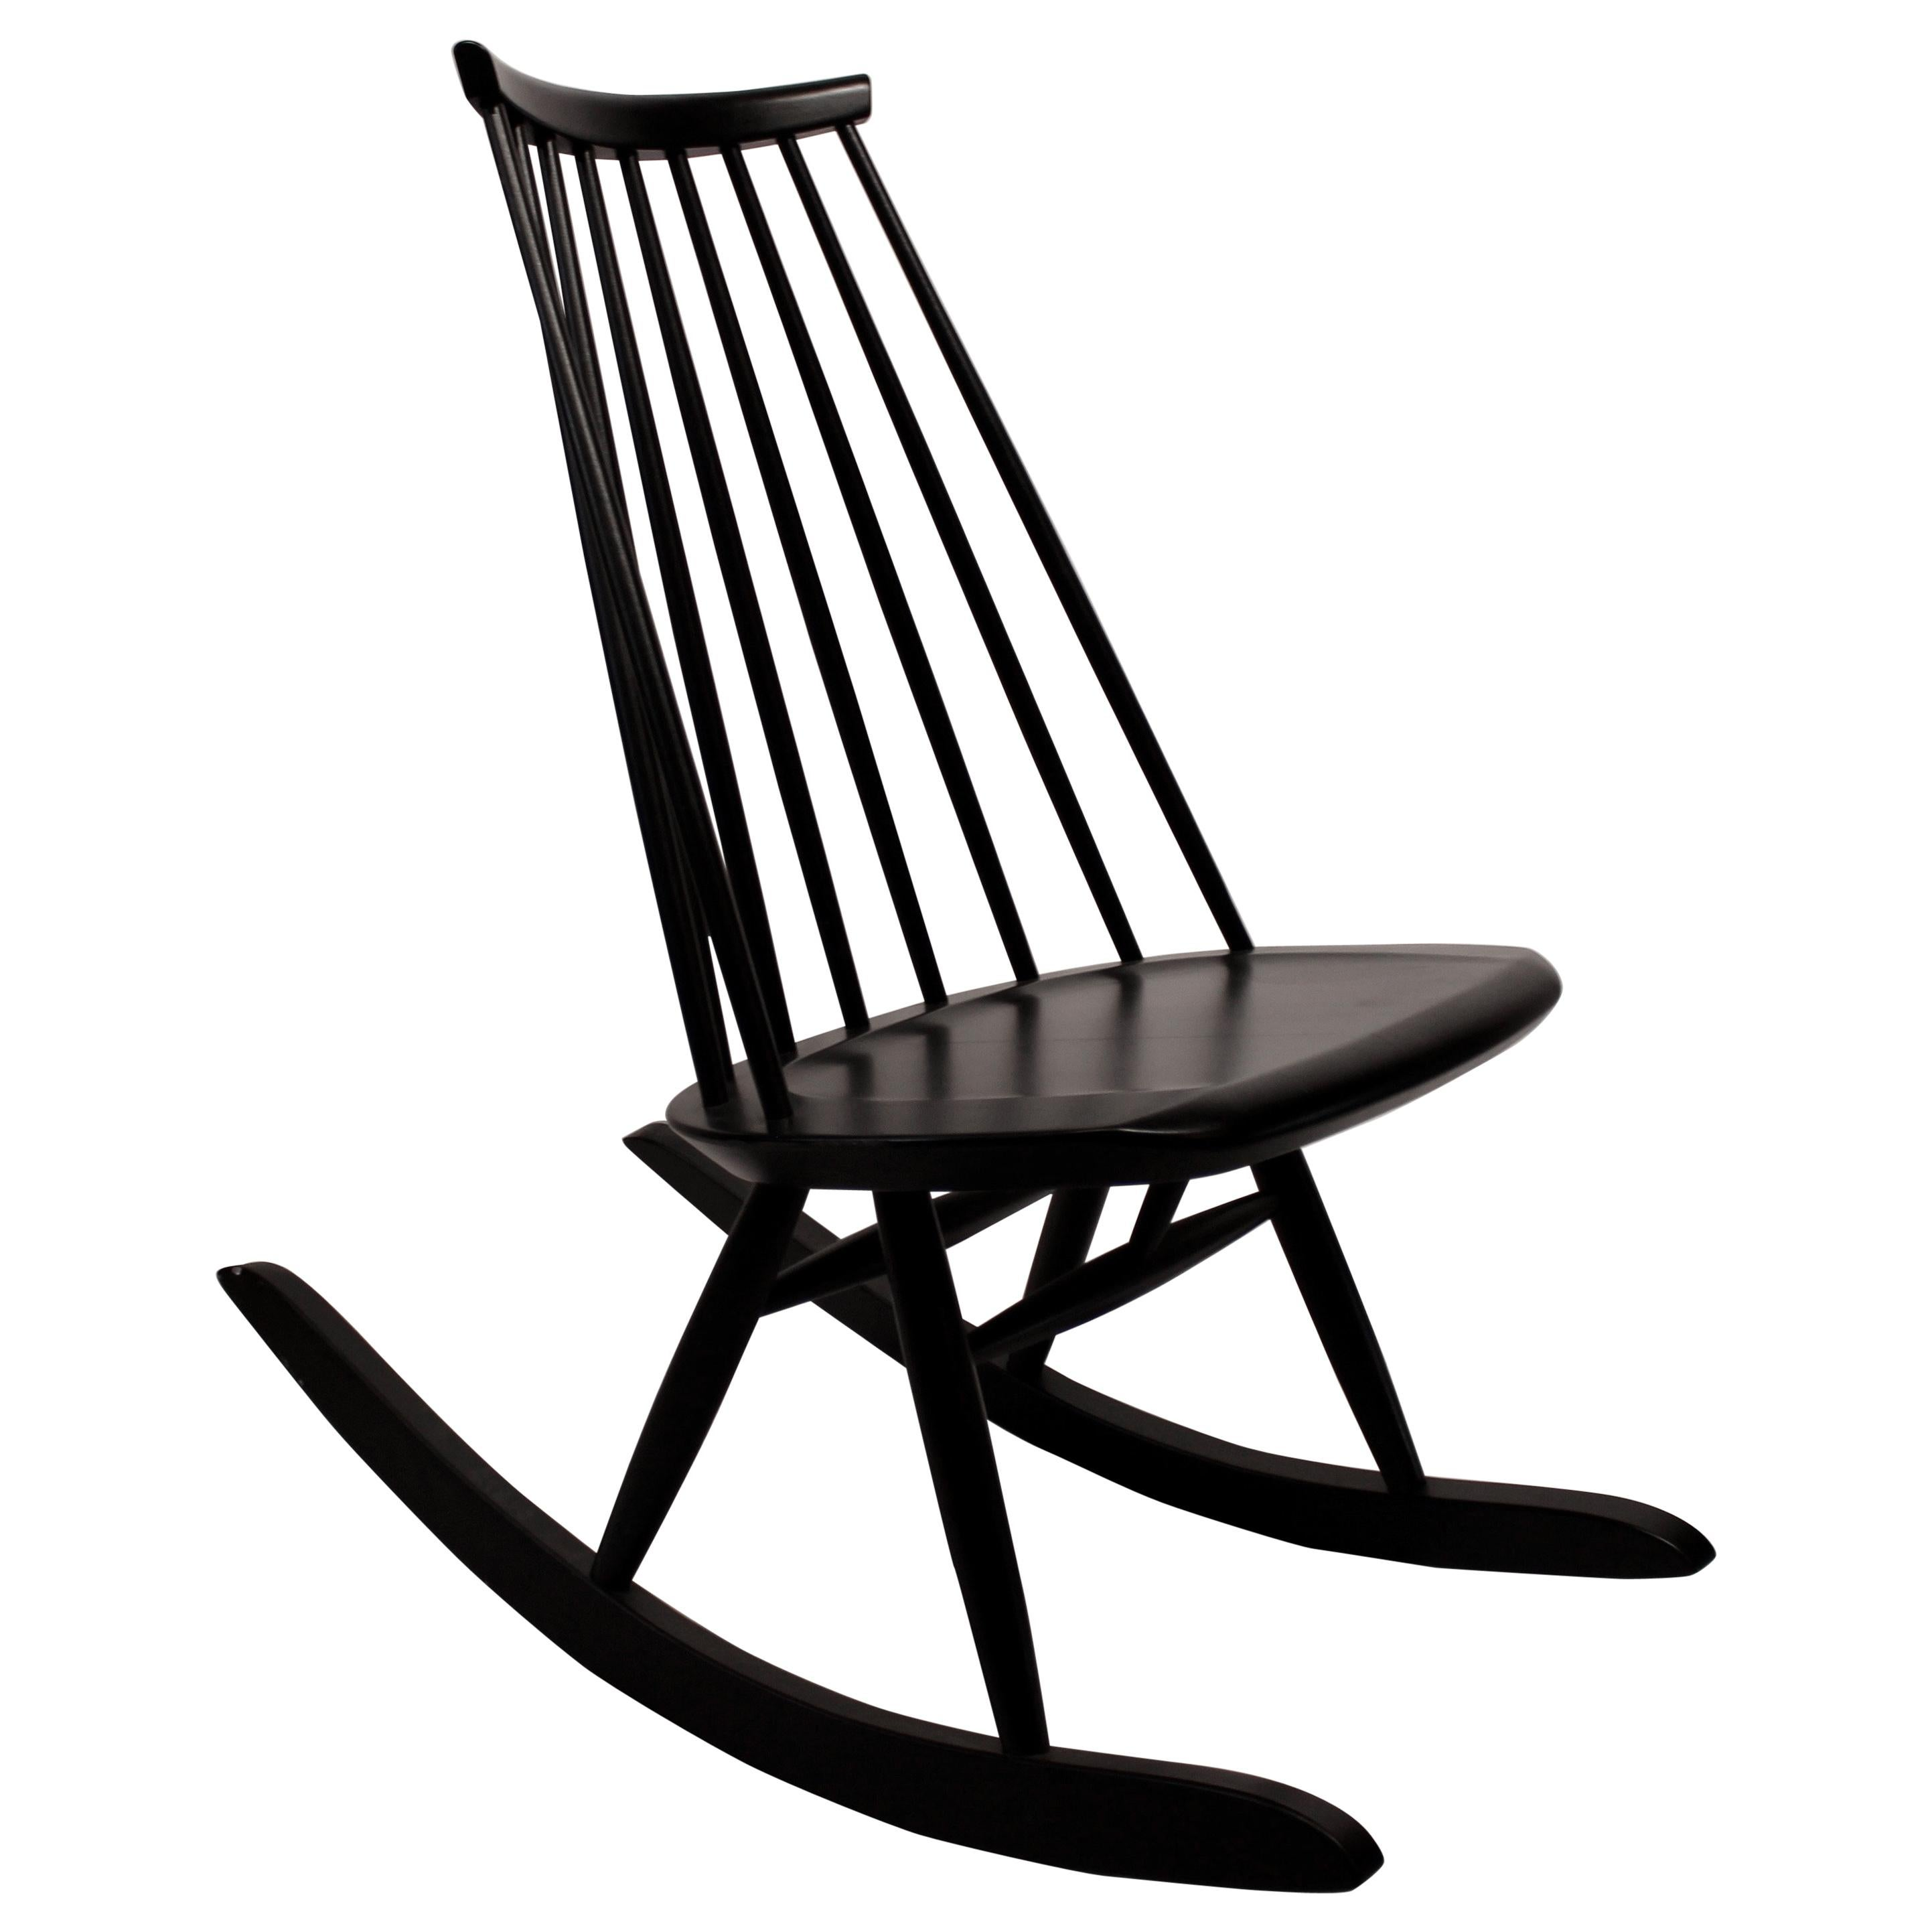 Mademoiselle Rocking Chair Designed by Ilmari Tapiovaara in 1956 for Artek